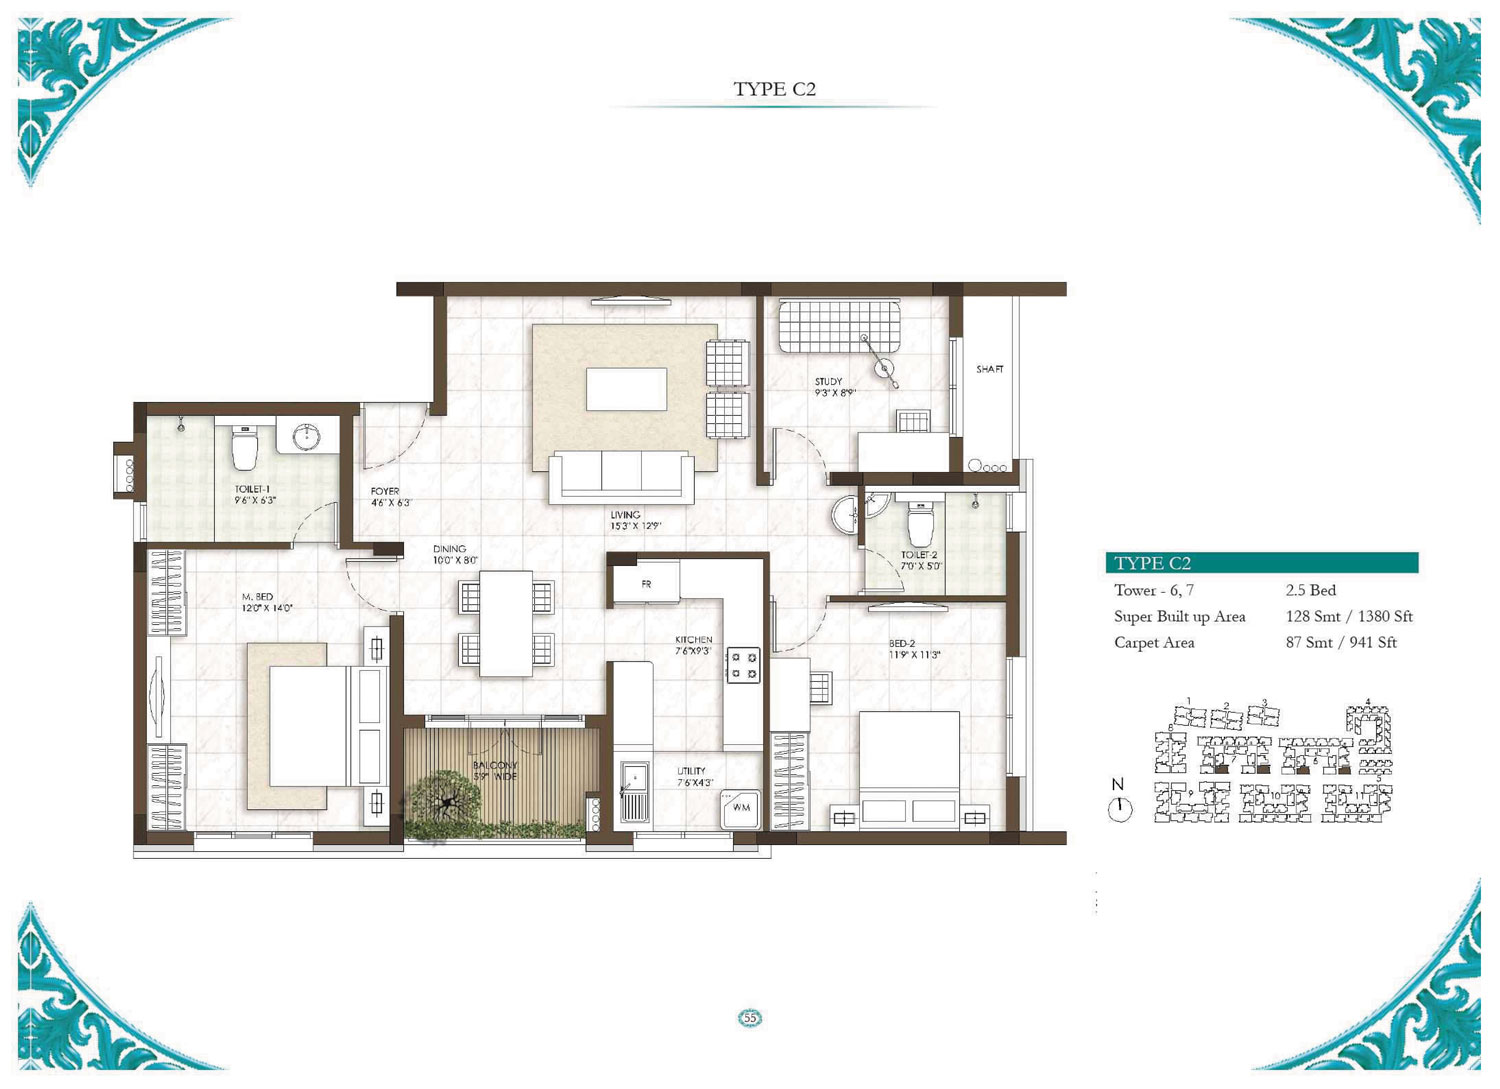 Type C2 - 2.5 Bed - 1380 Sq Ft